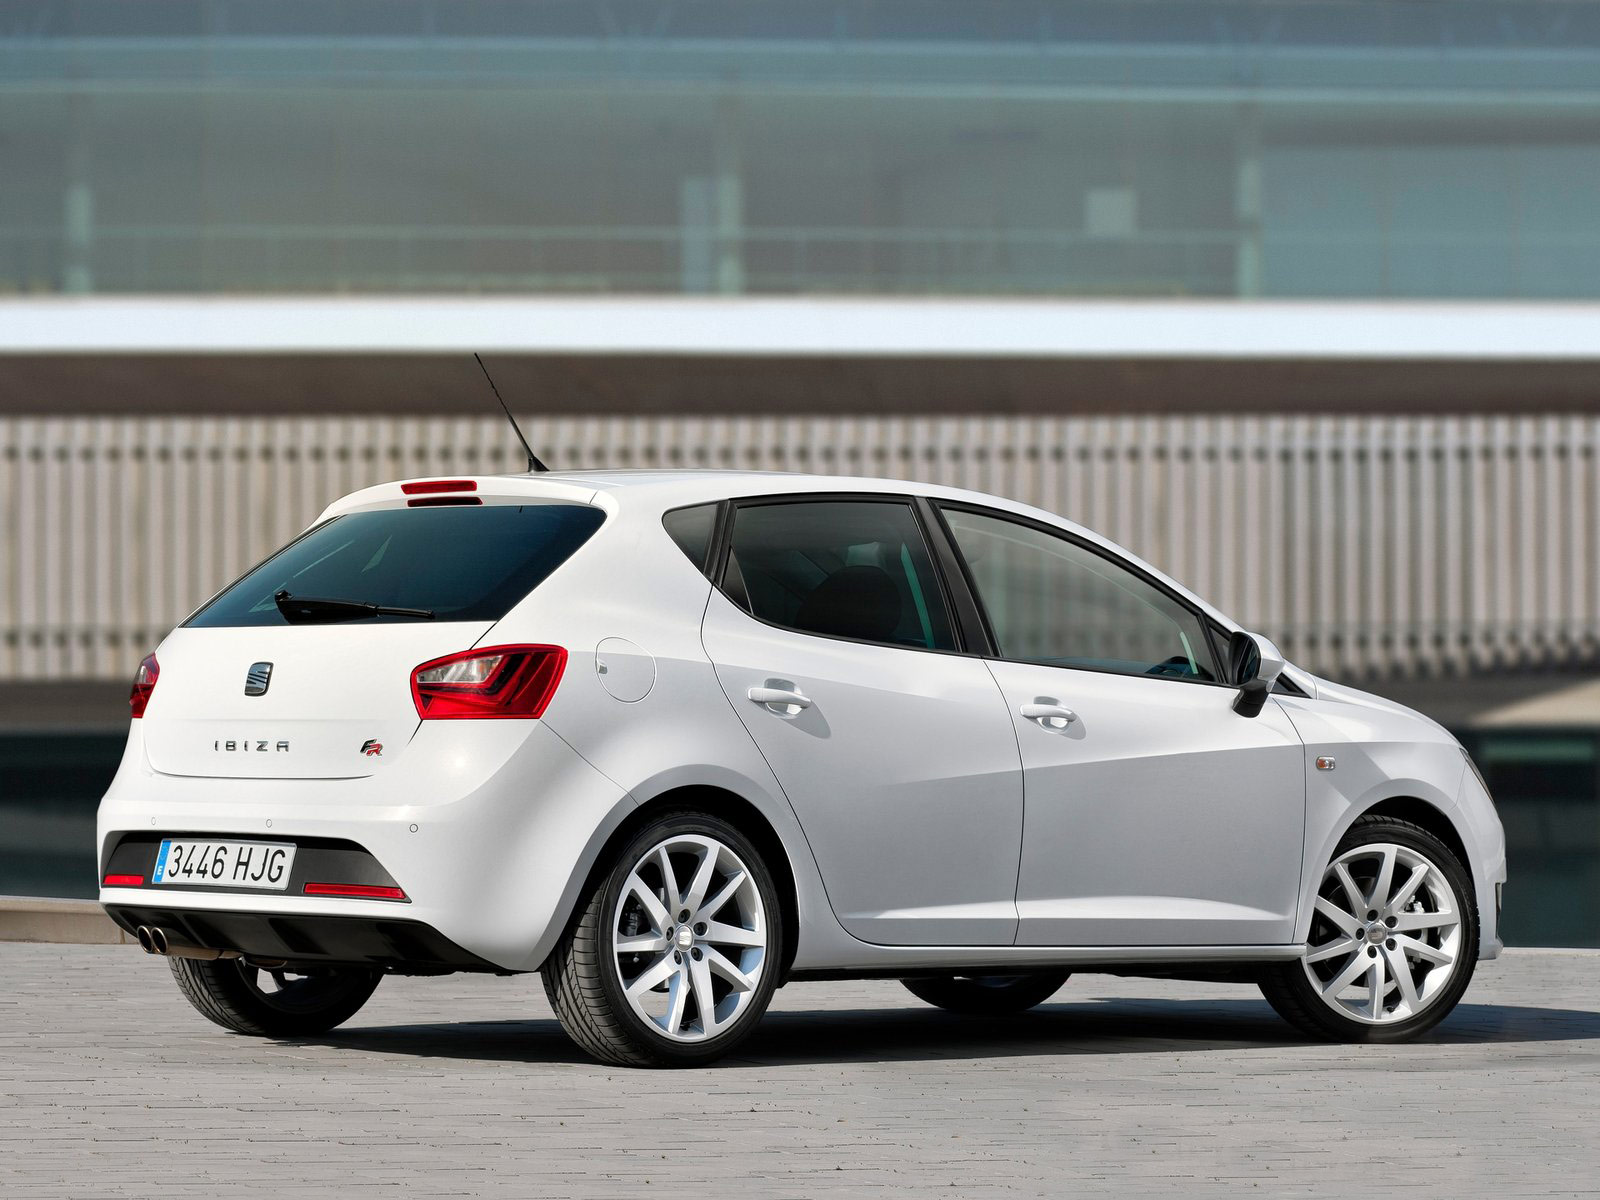 2013 seat ibiza car news. Black Bedroom Furniture Sets. Home Design Ideas